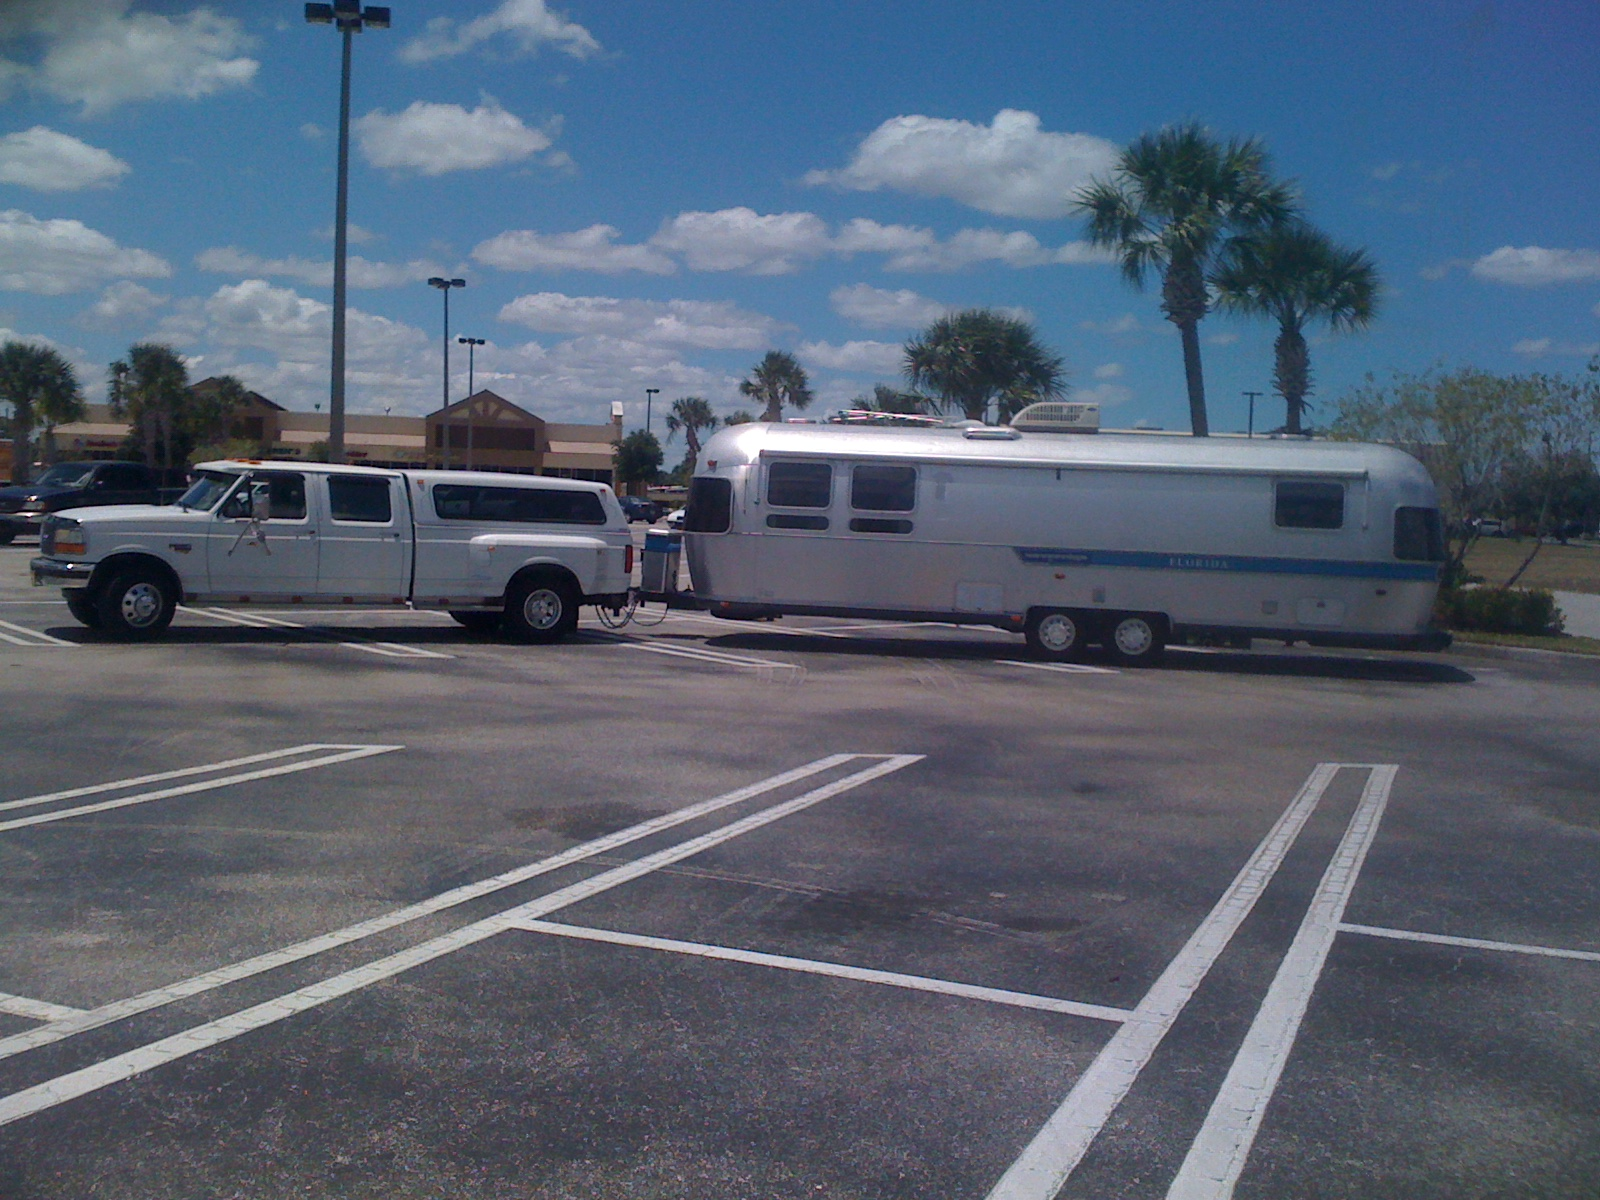 Click image for larger version  Name:Airstream 007.JPG Views:70 Size:699.8 KB ID:203527